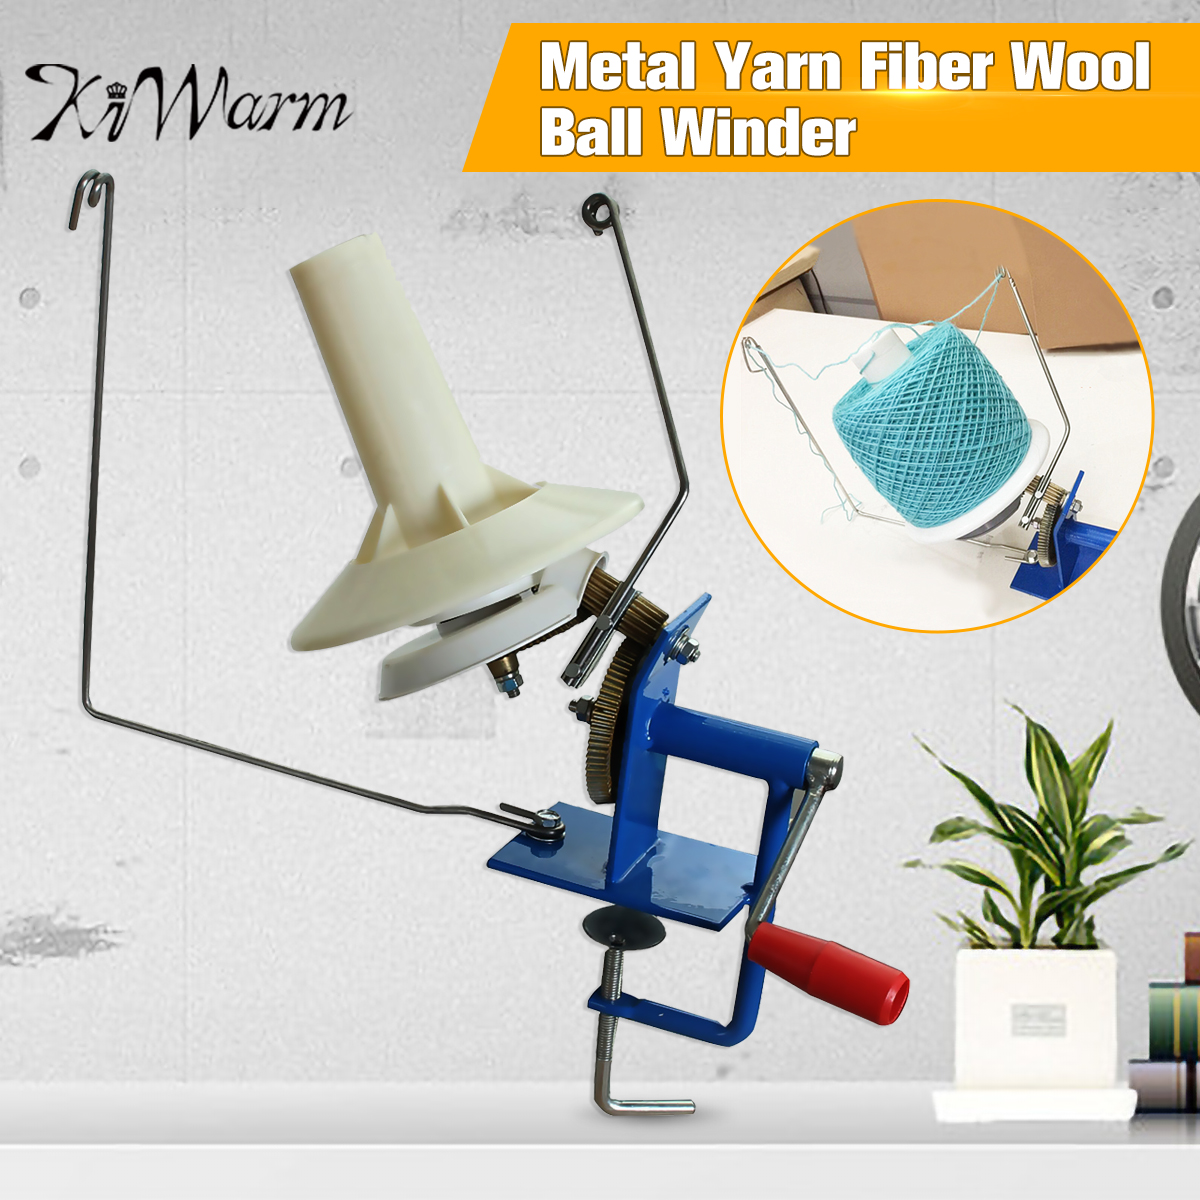 Large Metal Yarn Fiber String Ball Wool Hand Operated Cable Winder Machine Household Winder Holder Winder Fiber 10oz Heavy Duty